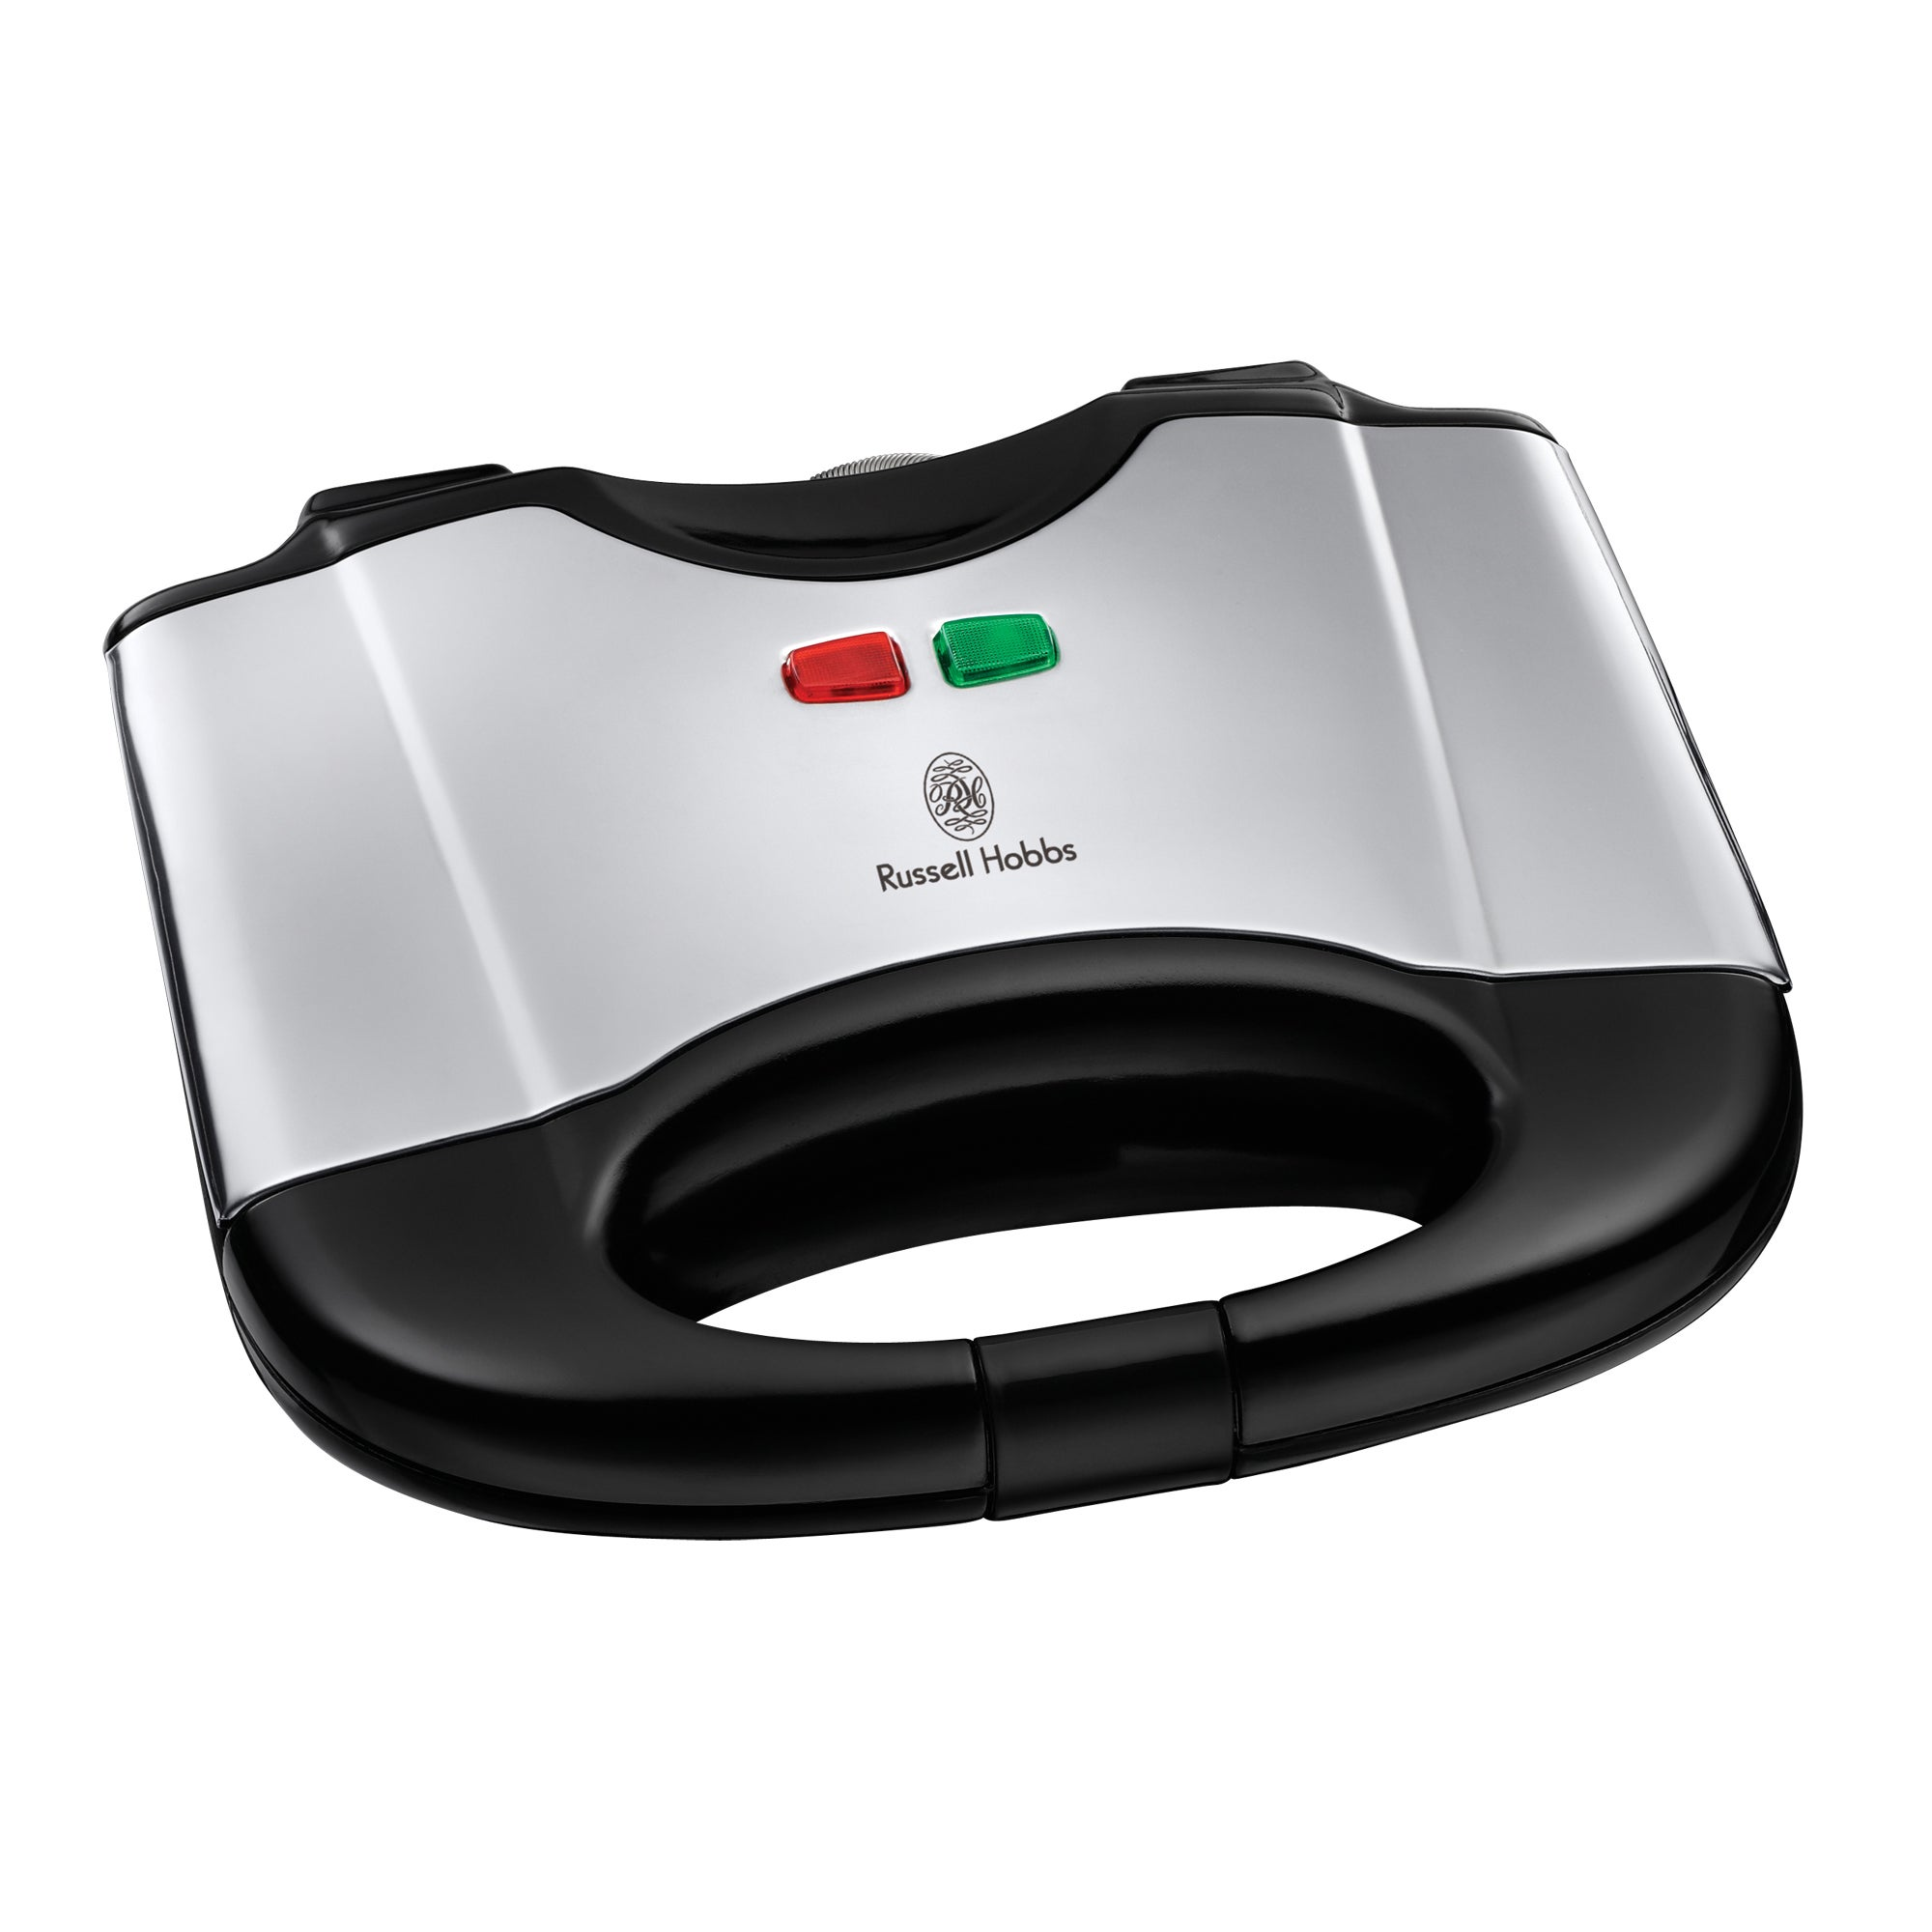 Russell Hobbs 17936 Stainless Steel Sandwich Maker